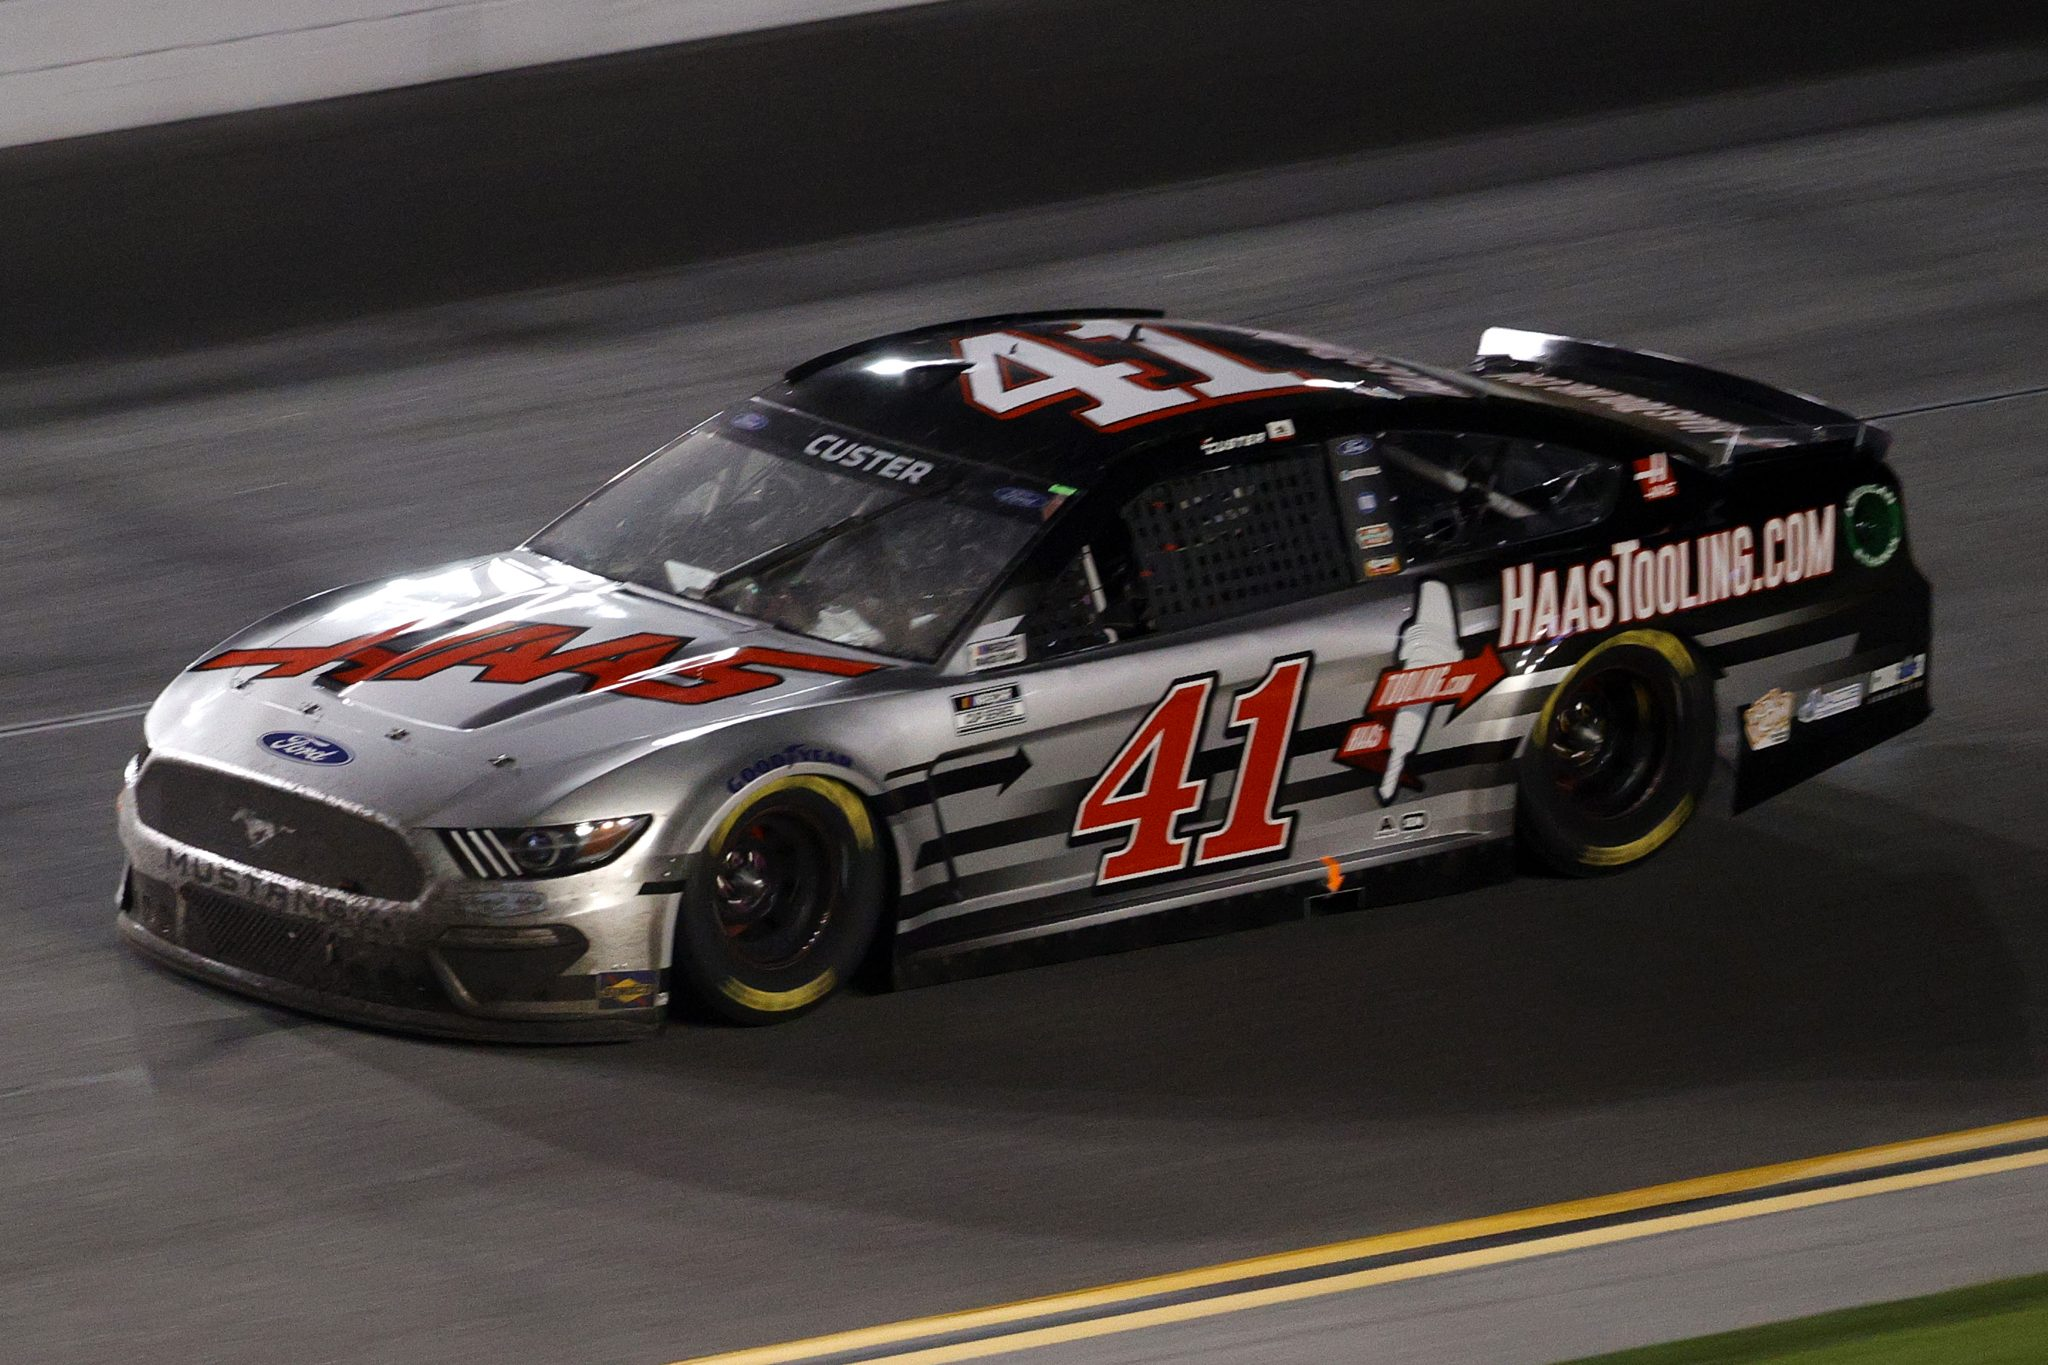 DAYTONA BEACH, FLORIDA - FEBRUARY 09: Cole Custer, driver of the #41 HaasTooling.com Ford, drives during the NASCAR Cup Series Busch Clash at Daytona at Daytona International Speedway on February 09, 2021 in Daytona Beach, Florida. (Photo by Chris Graythen/Getty Images) | Getty Images